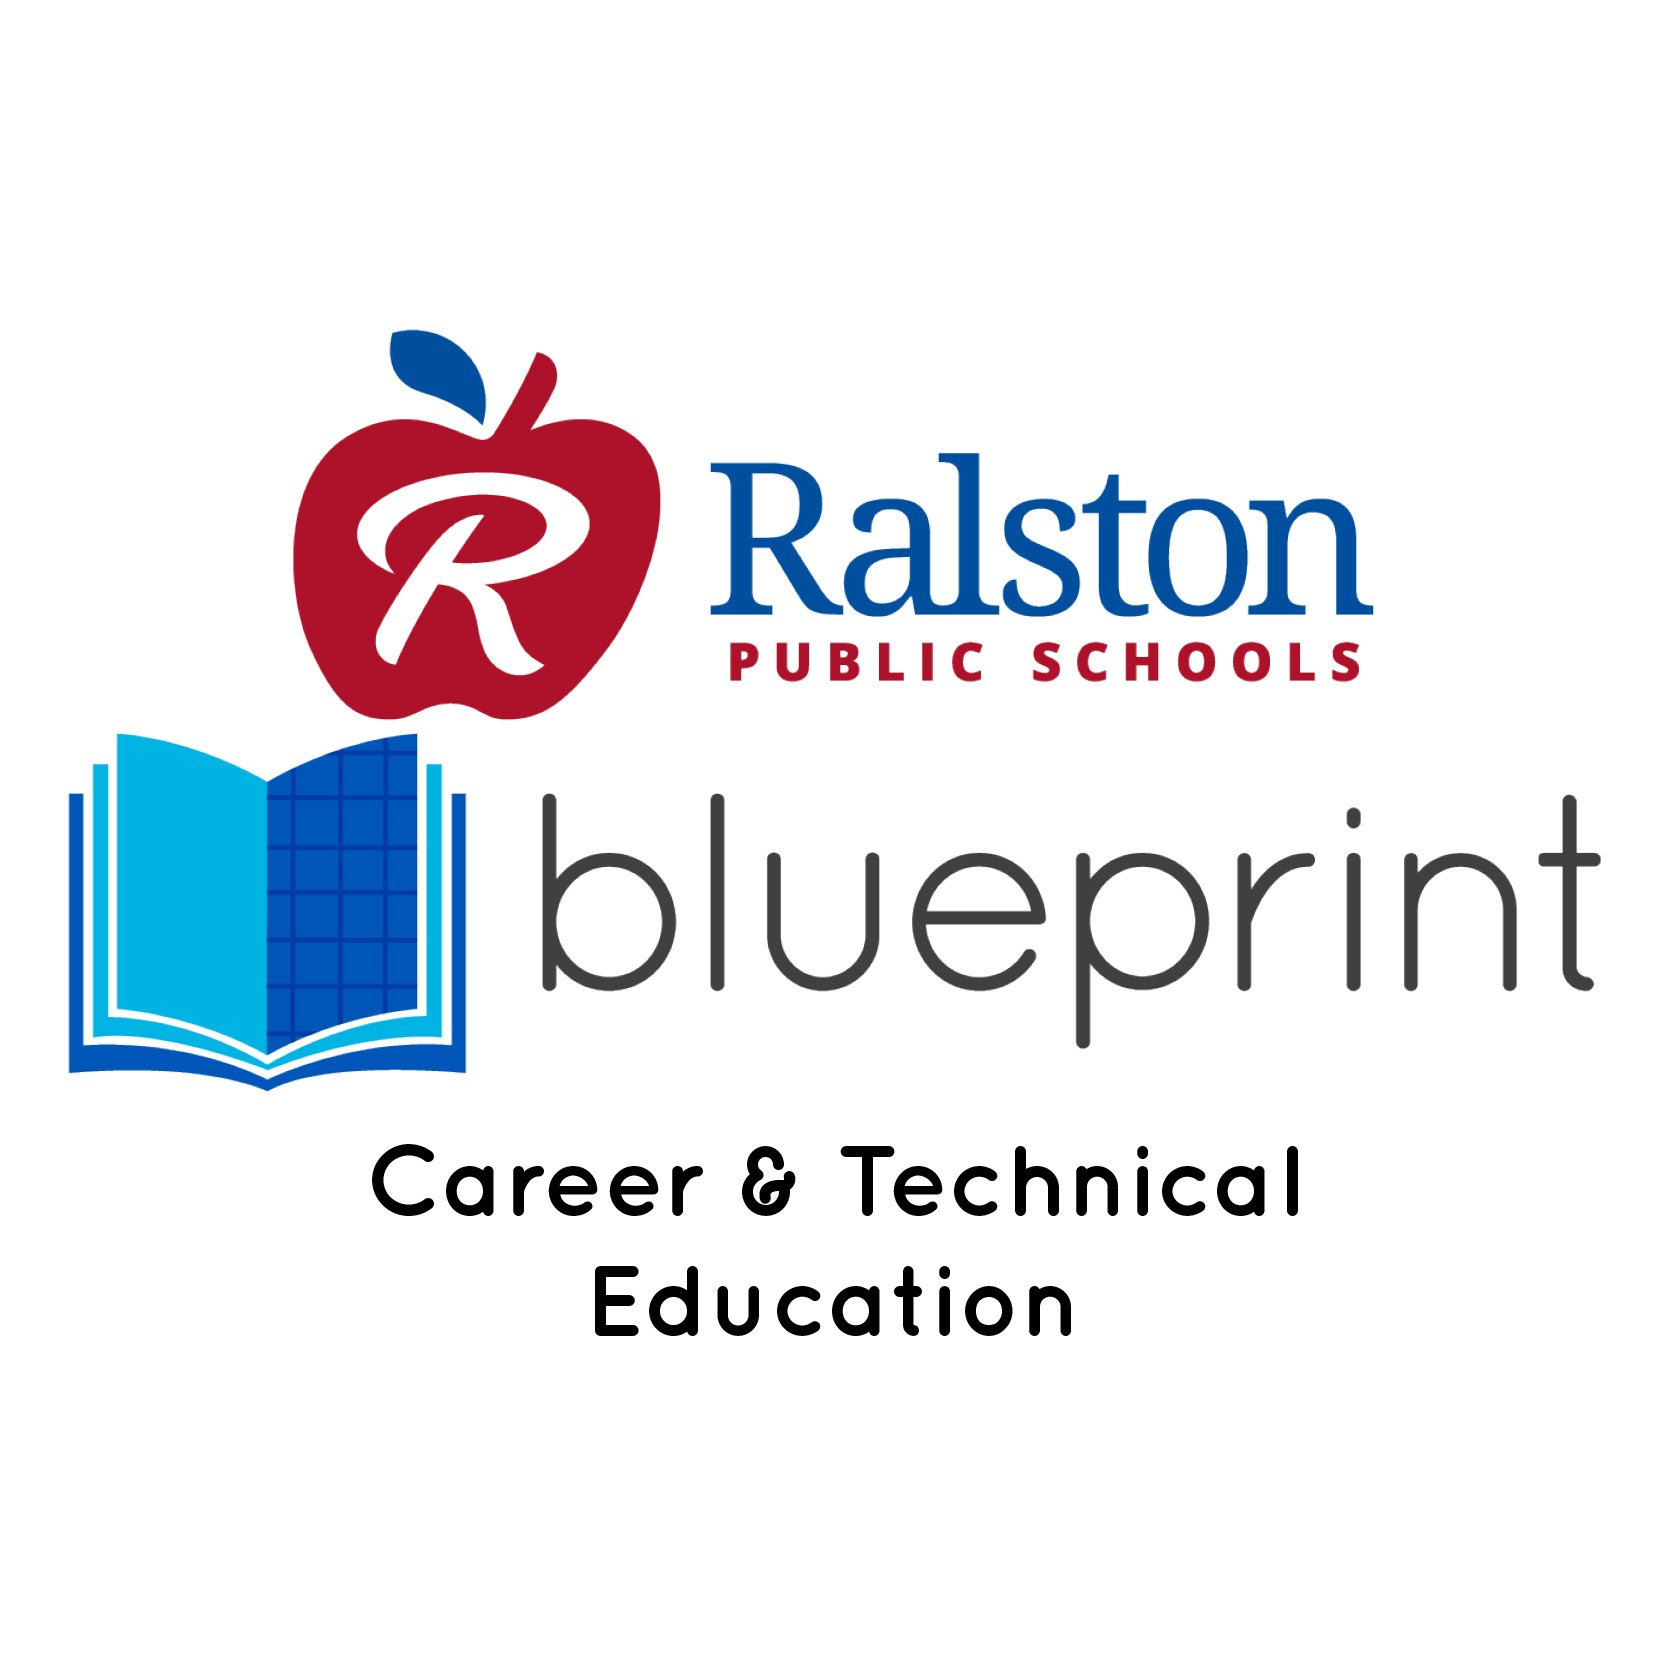 Rpsblueprint rpsblueprint twitter rpsblueprint malvernweather Images